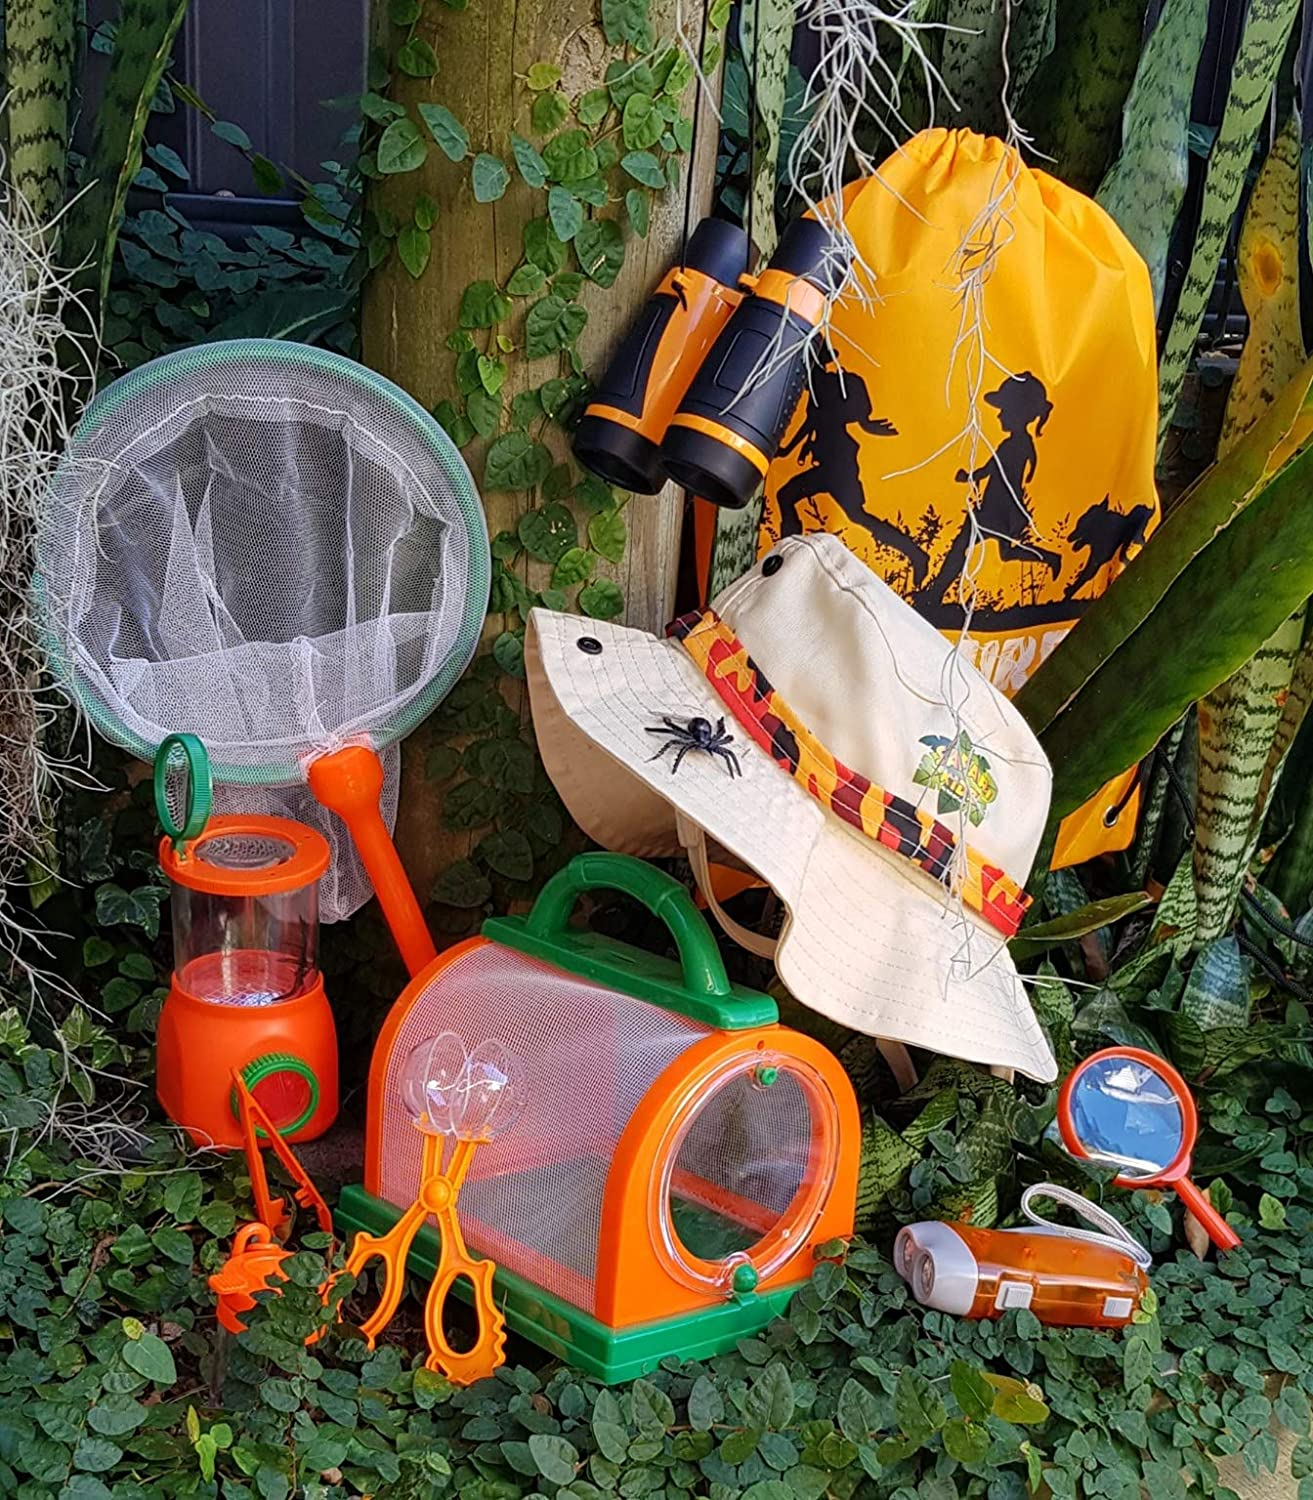 Adventure Kidz Outdoor Bug Exploration Kit, Binoculars, Magnifying Glass, Bug Container, Viewers, Critter Cage, Net, Backpack, Hat: Toys & Games